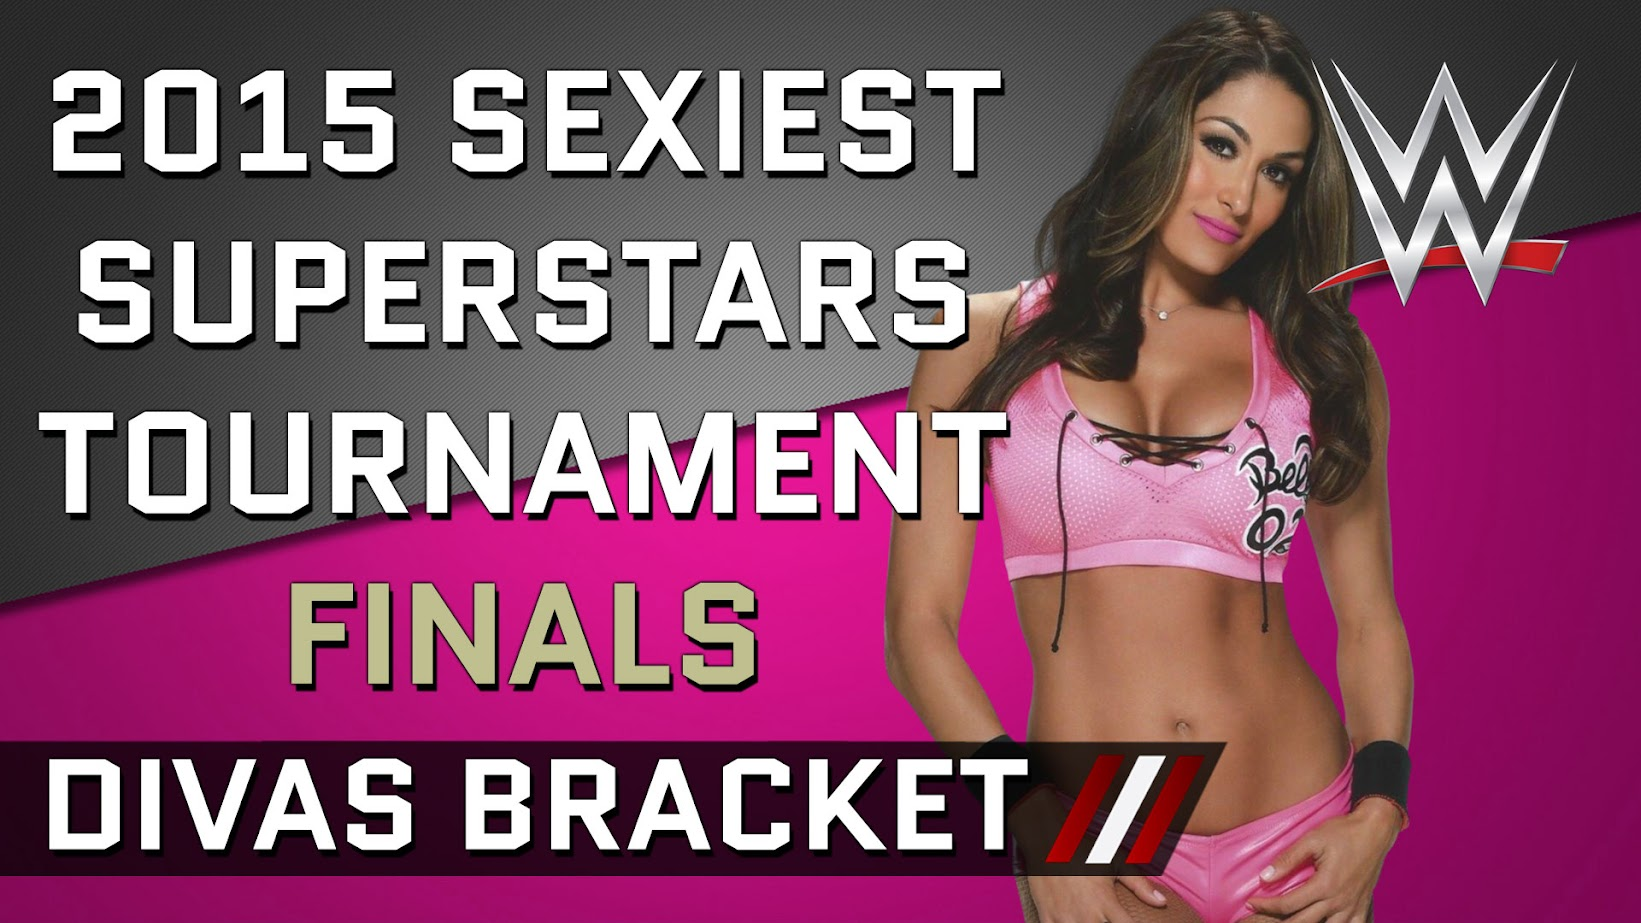 vote on the hottest wrestlers in WWE 2015 tournament